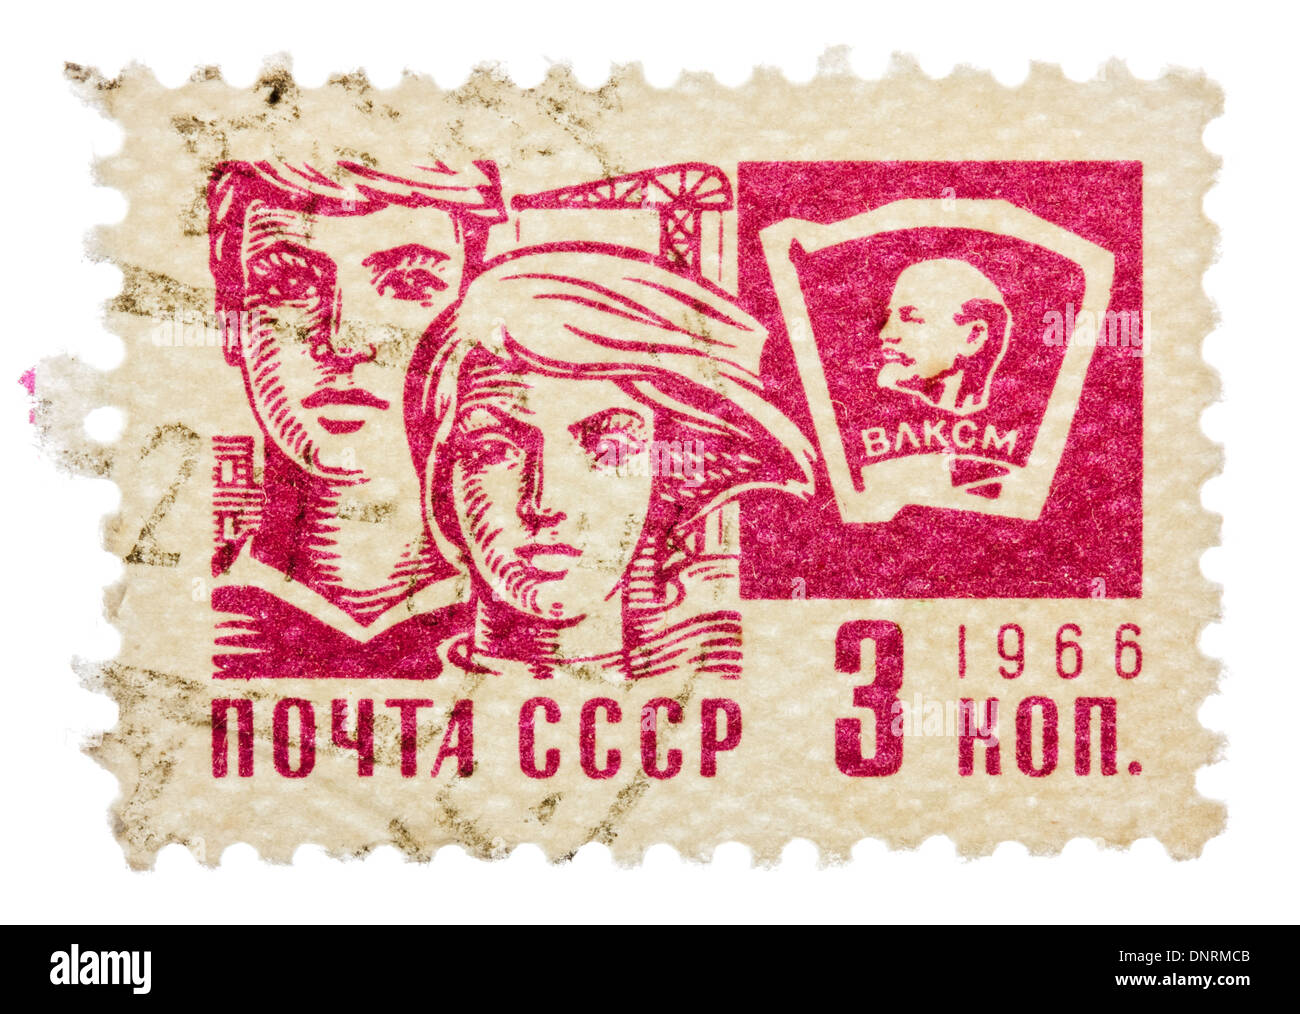 USSR - CIRCA 1966: Postage stamp printed in the USSR shows The All-Union Leninist Young Communist League, Komsomol, circa 1966 - Stock Image